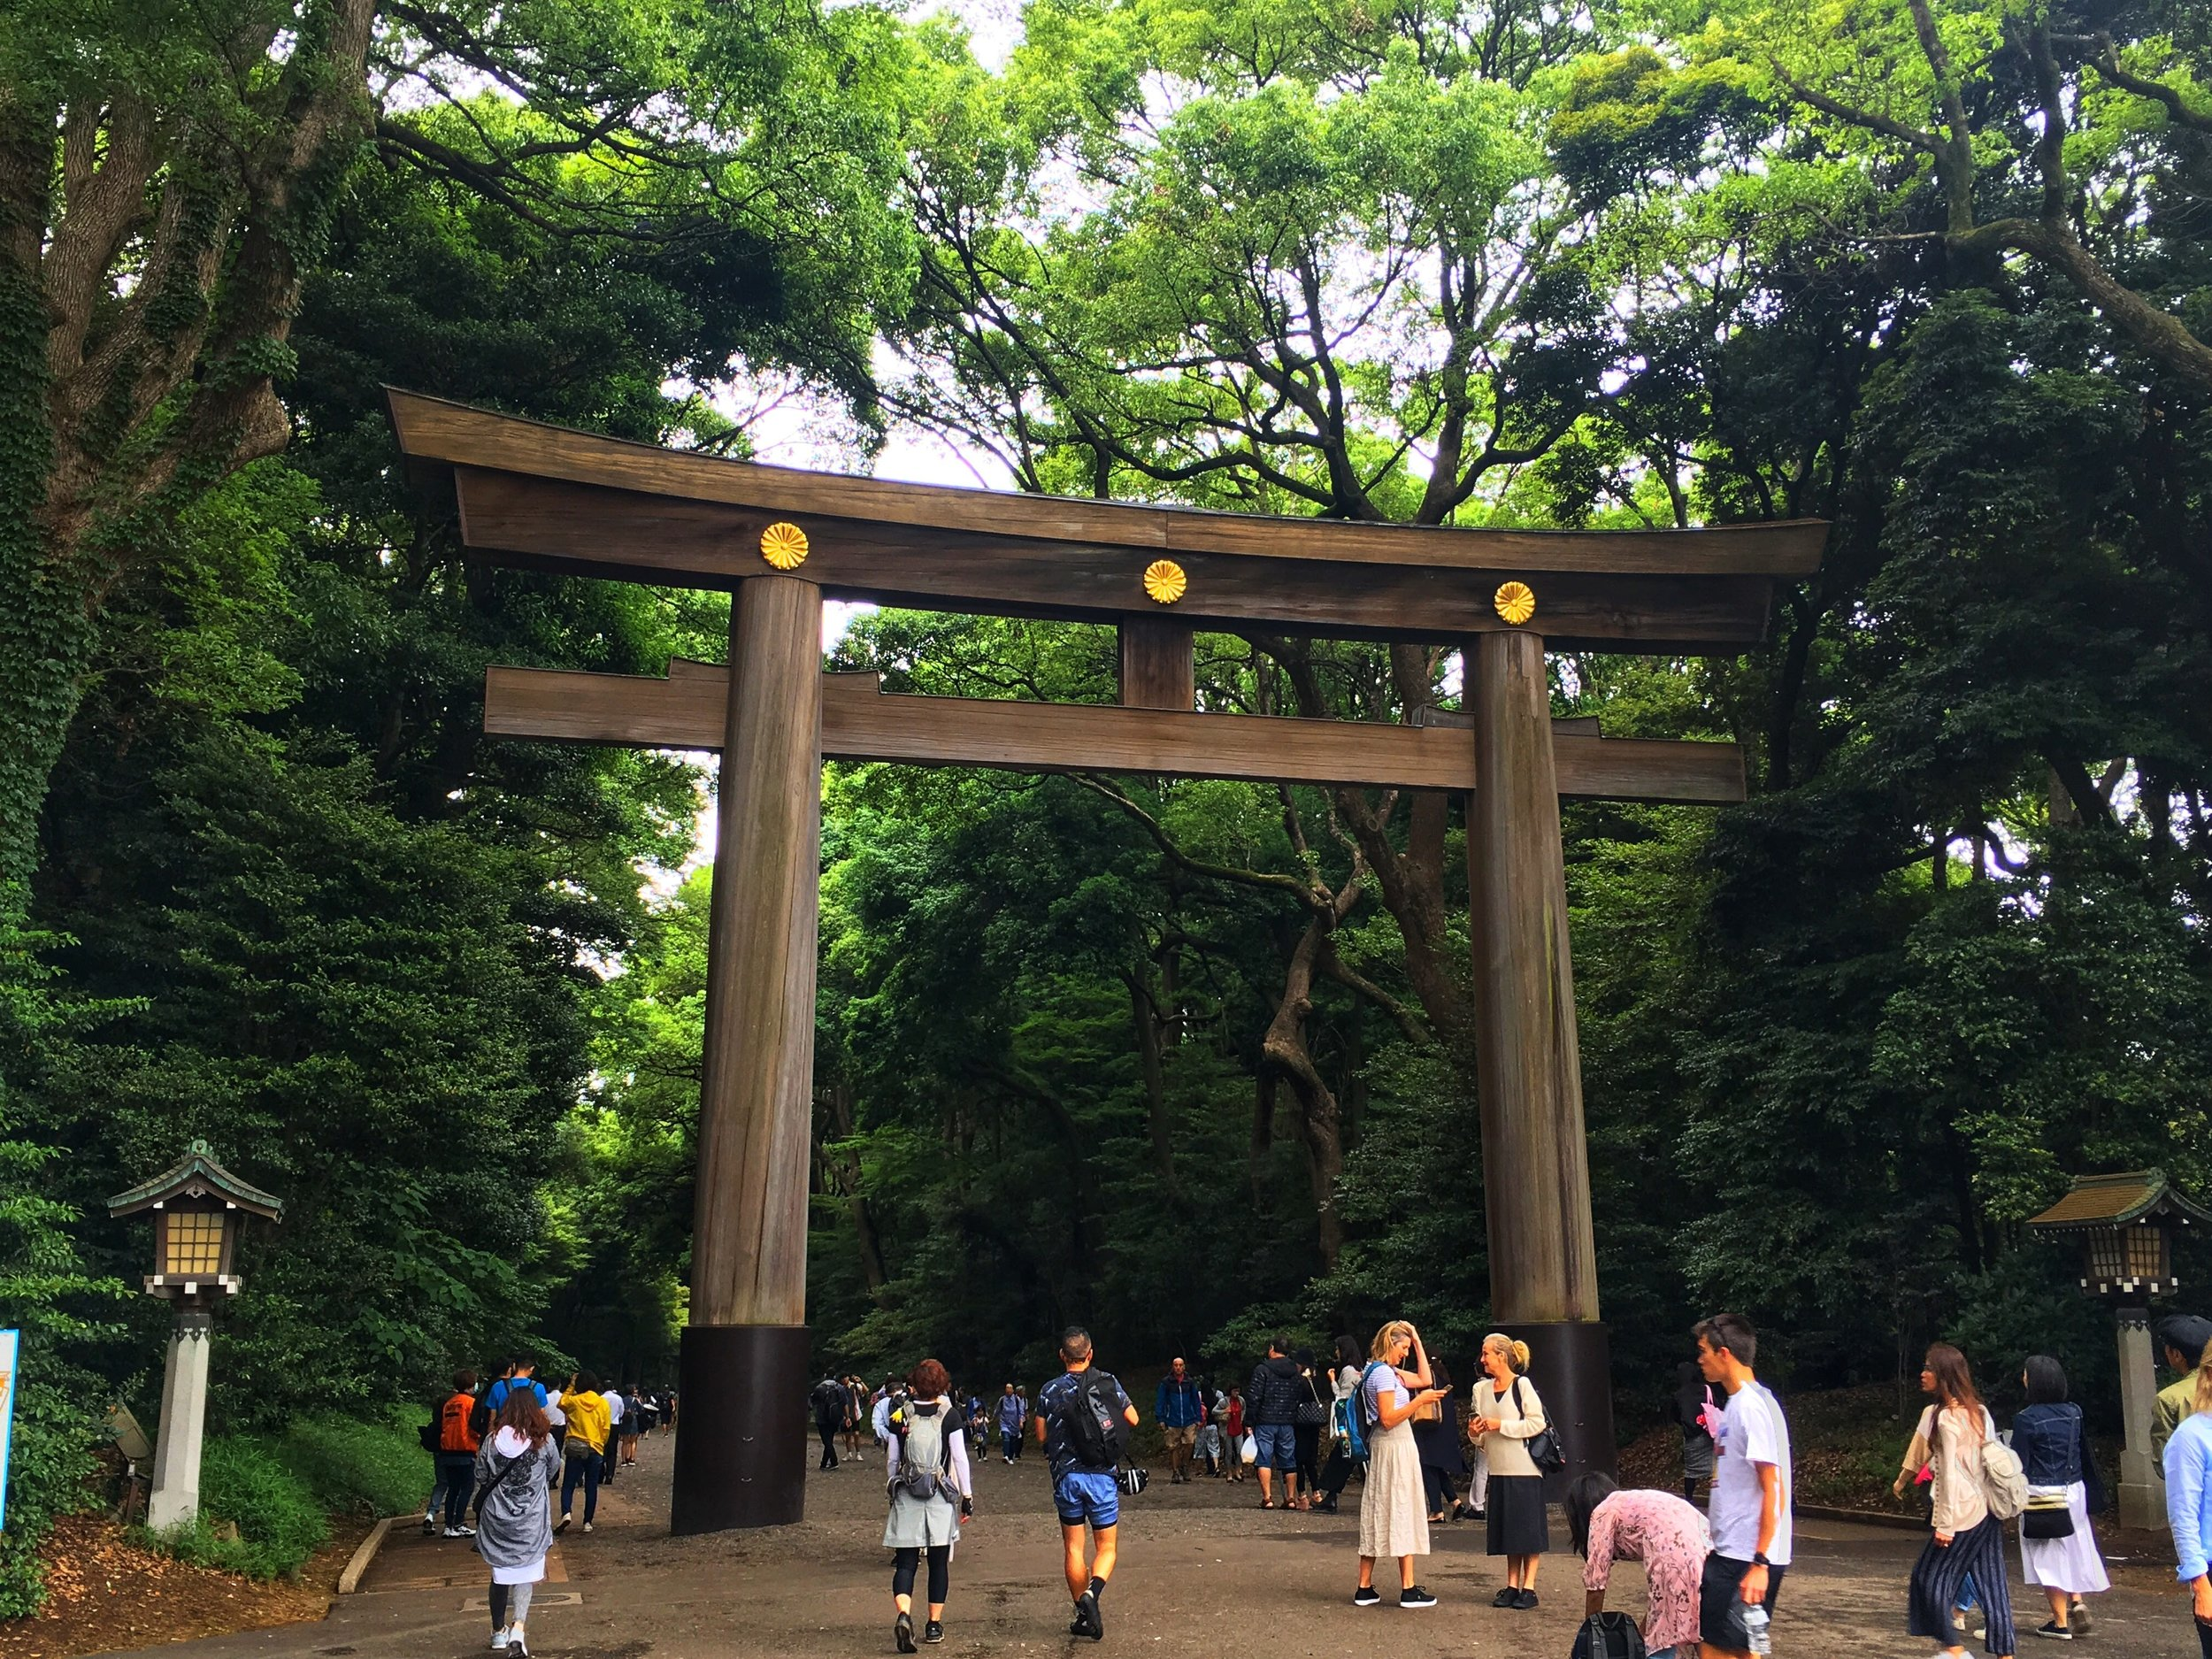 The giant wooden gates at the Meiji Shrine in Tokyo, Japan